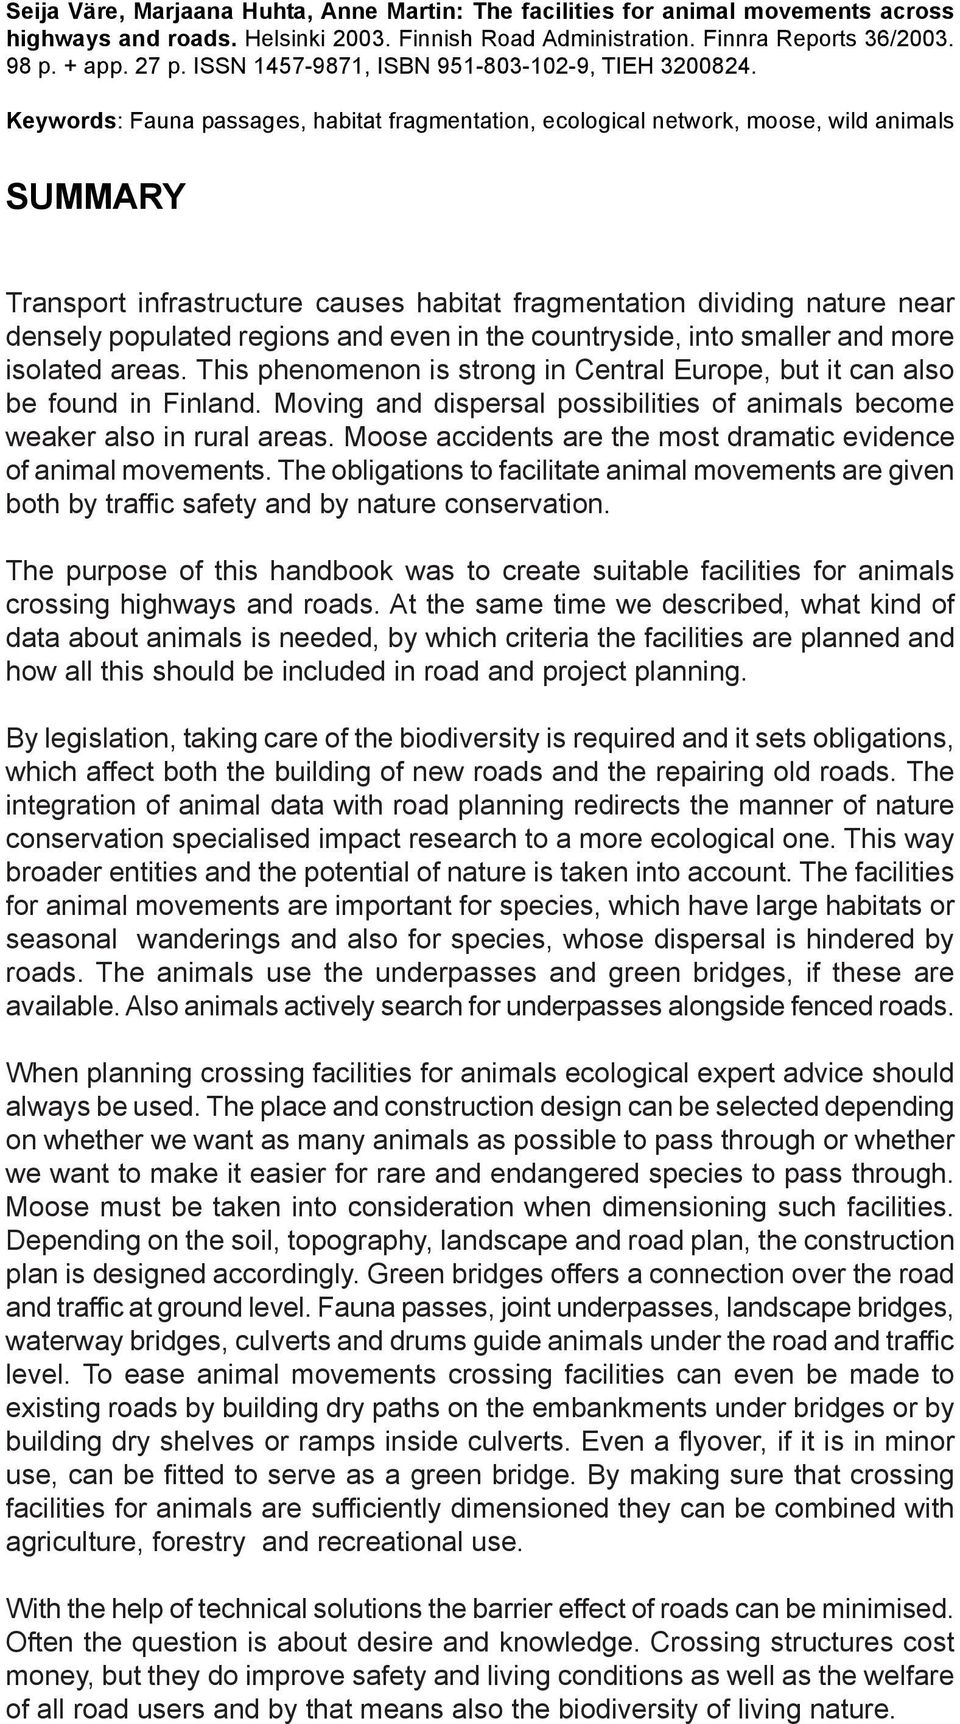 Keywords: Fauna passages, habitat fragmentation, ecological network, moose, wild animals SUMMARY Transport infrastructure causes habitat fragmentation dividing nature near densely populated regions